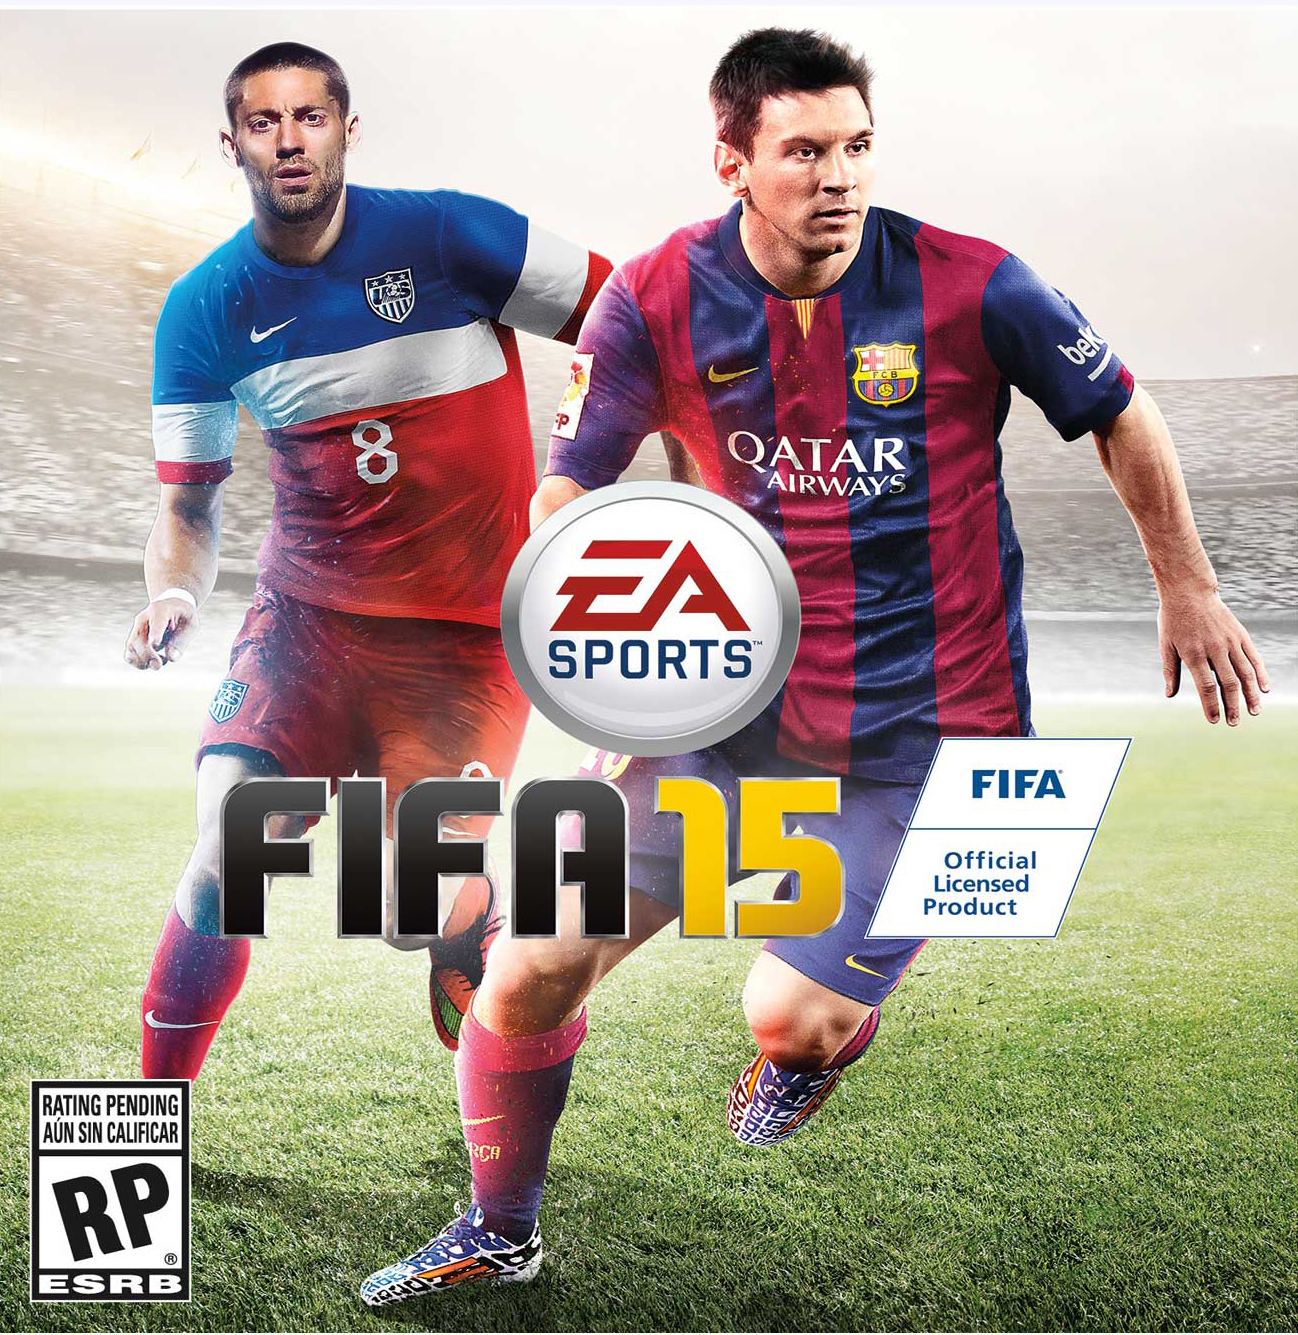 fifa 15 fifa football gaming wiki fandom powered by wikia. Black Bedroom Furniture Sets. Home Design Ideas